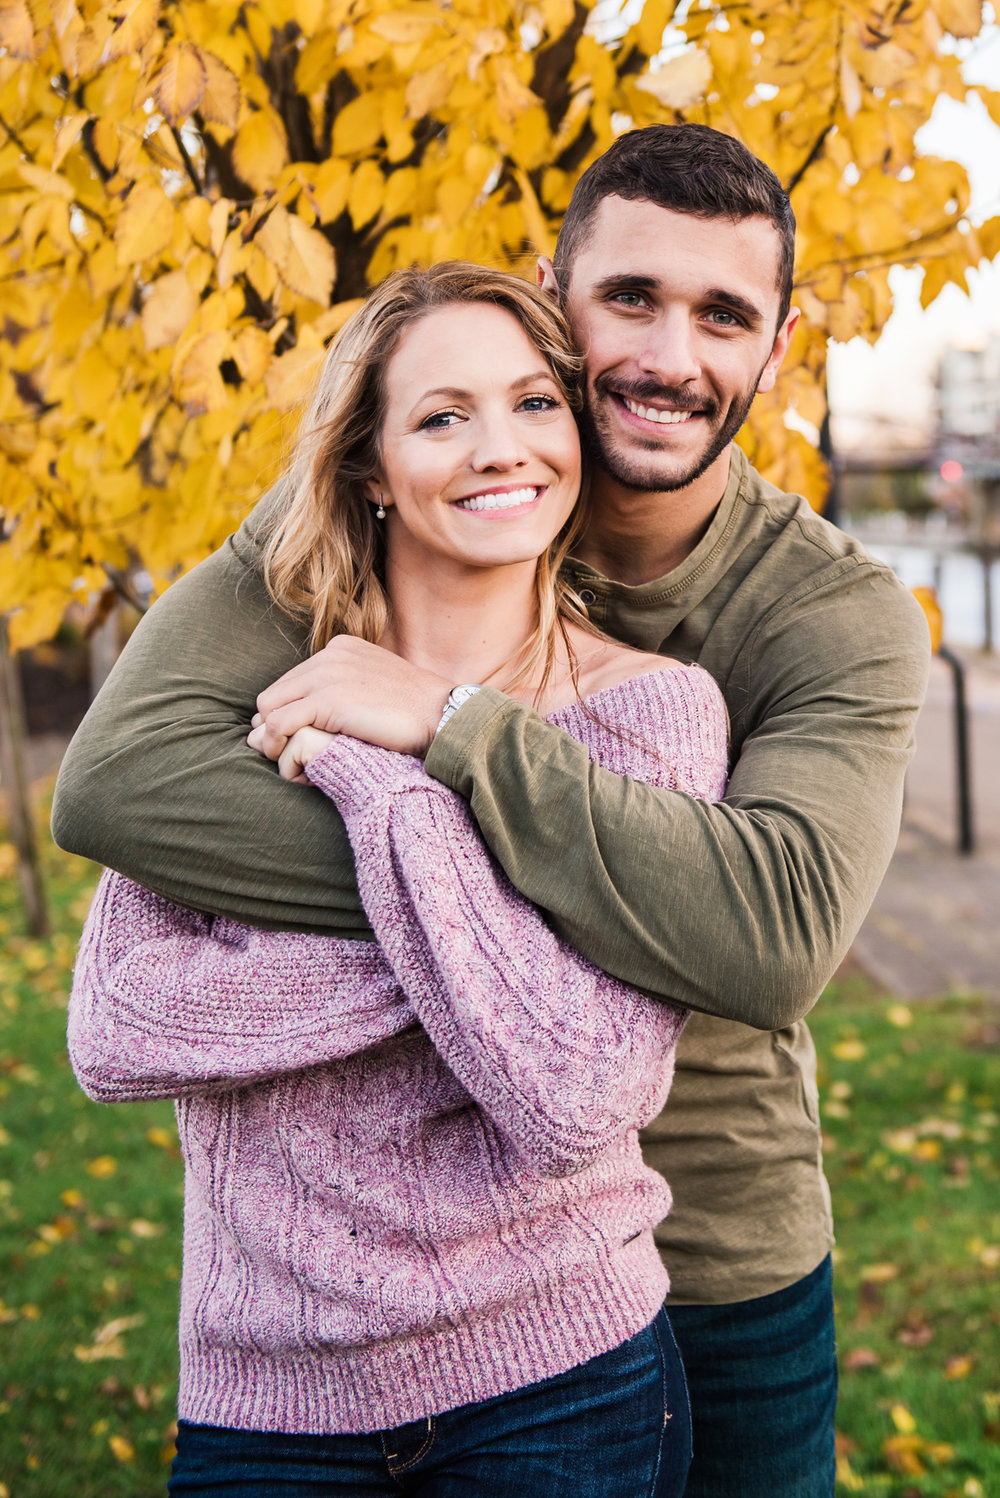 Village_of_Fairport_Rochester_Engagement_Session_JILL_STUDIO_Rochester_NY_Photographer_DSC_8711.jpg